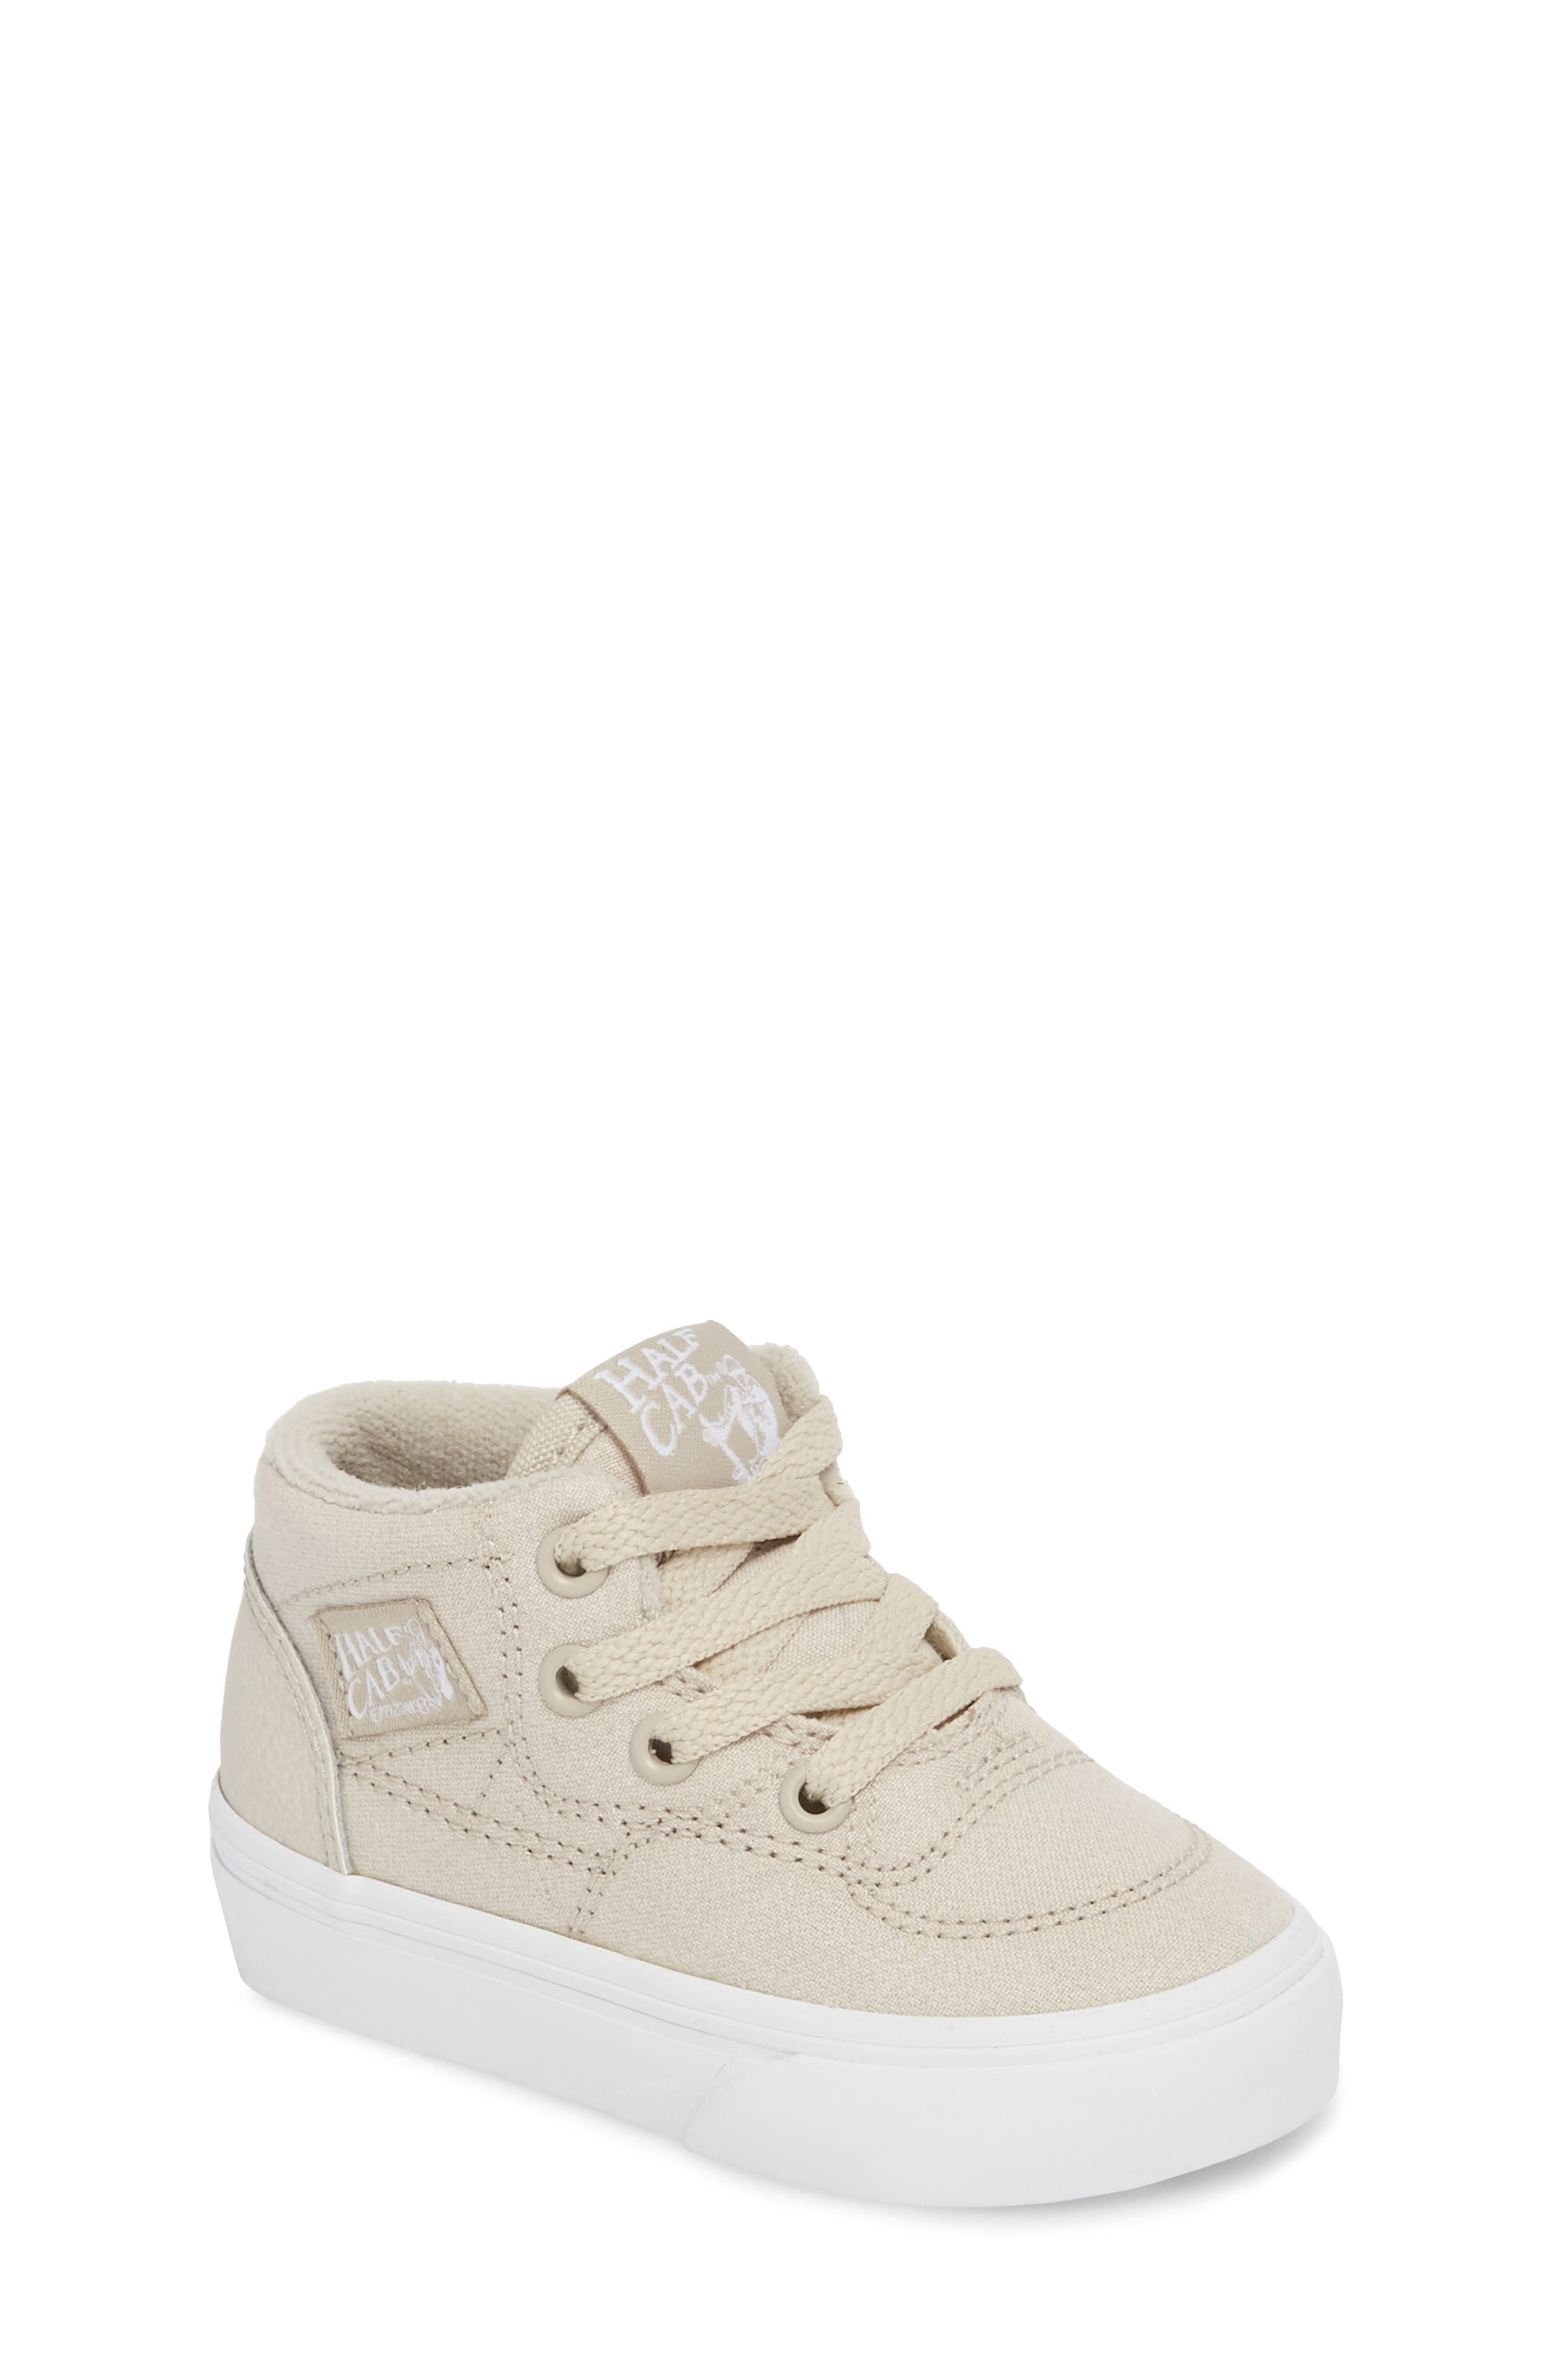 Half Cab Sneaker,                         Main,                         color, Suiting Silver/ True White